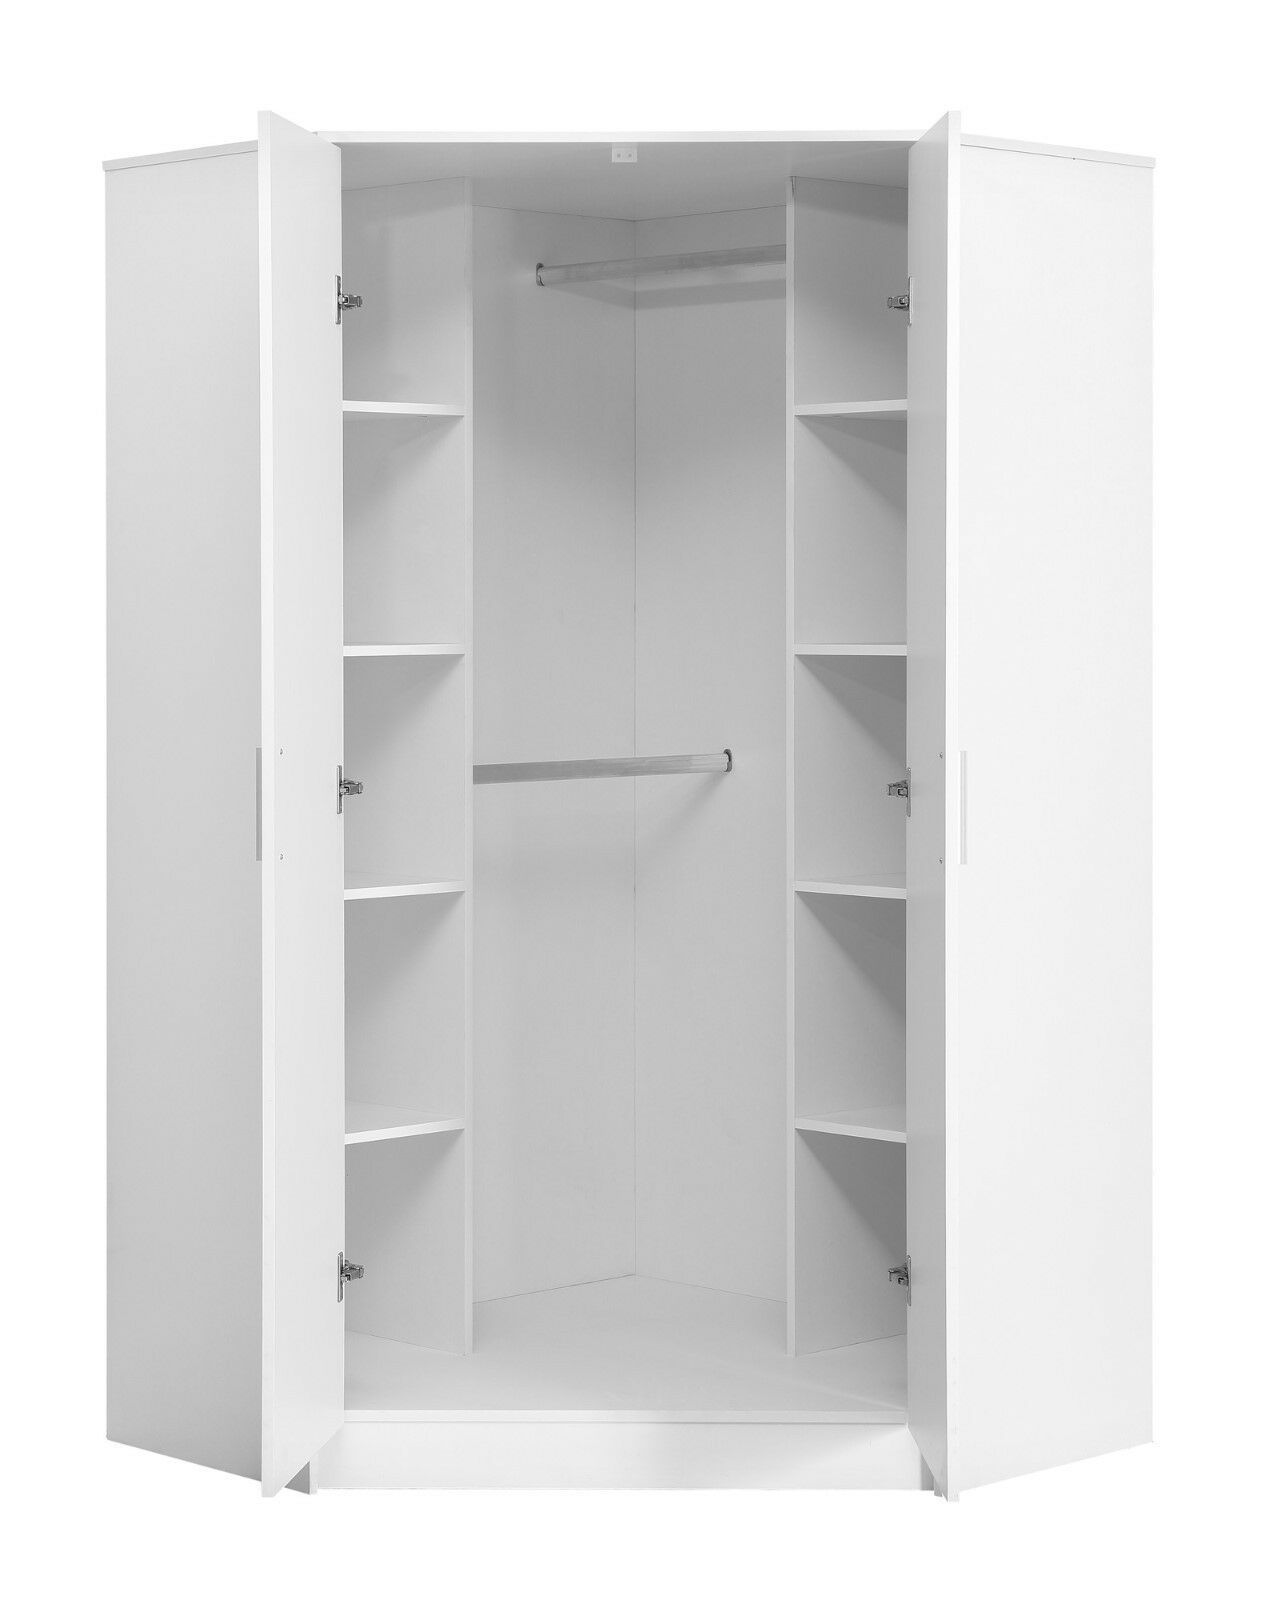 White Gloss Bedroom Furniture in 2020 | Corner wardrobe ...